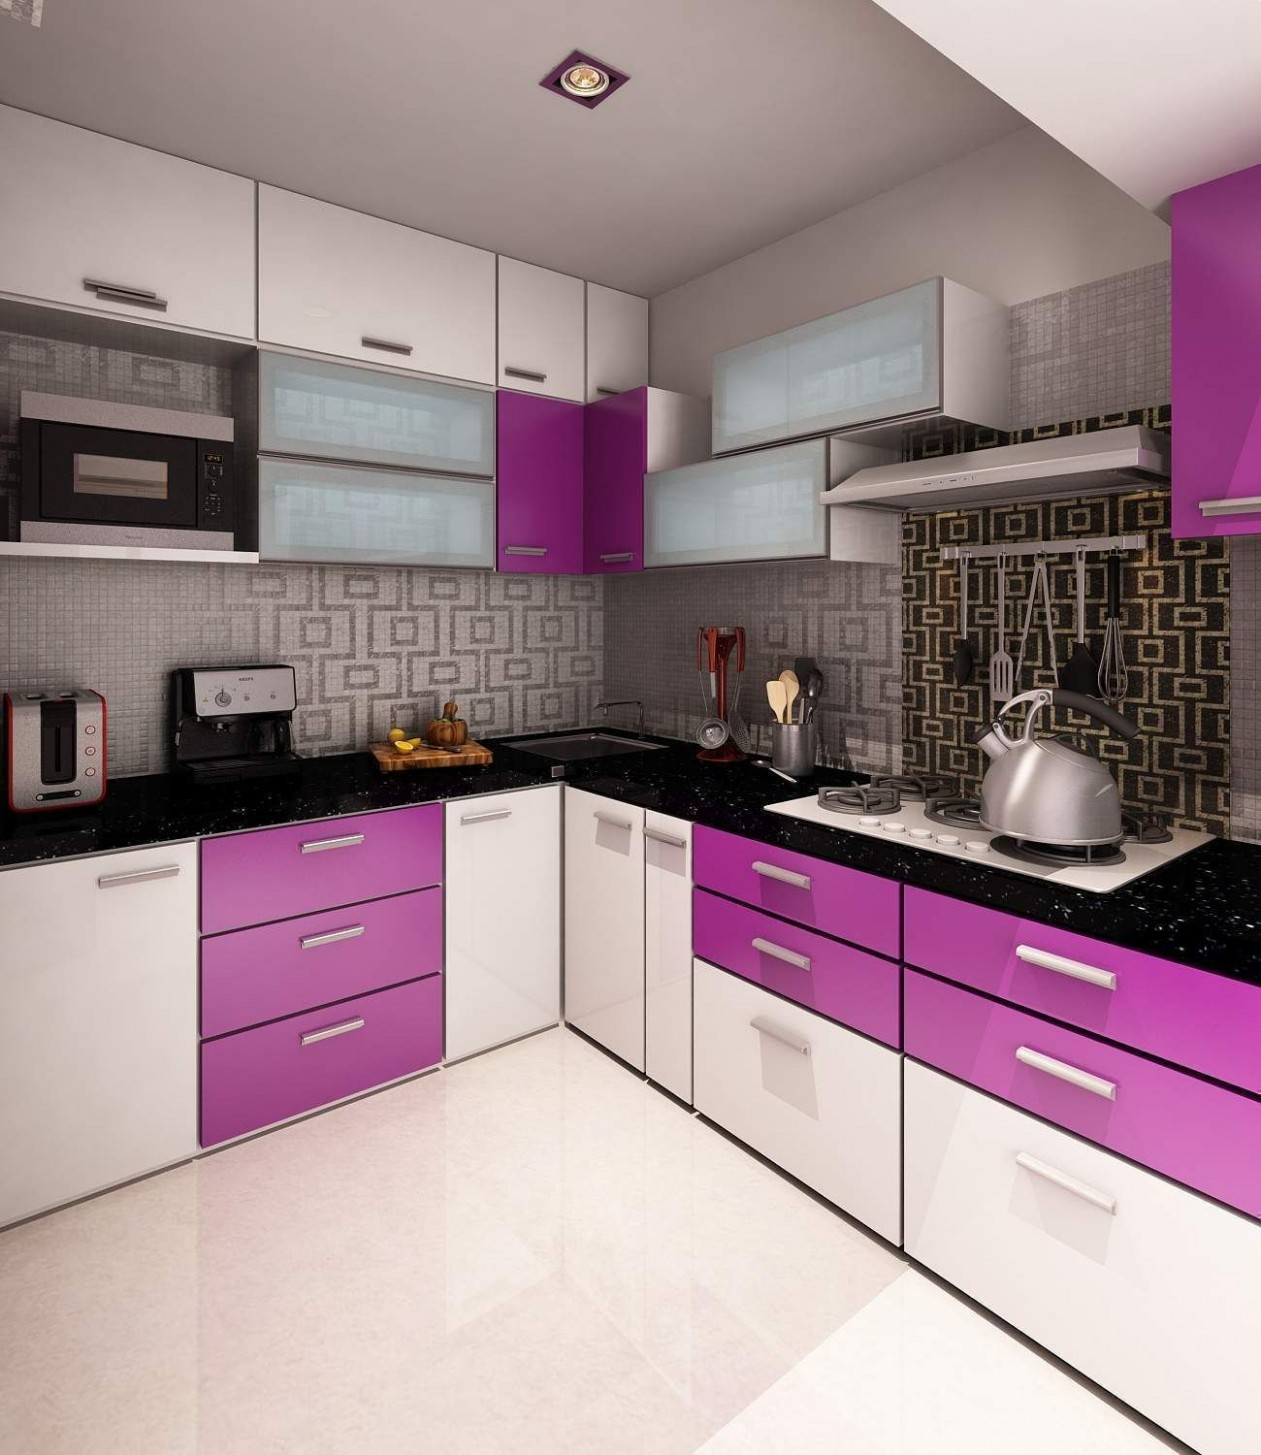 kitchen excellent simple remodel decorating ideas purple and decor  - Pink And Purple Kitchen Cabinets